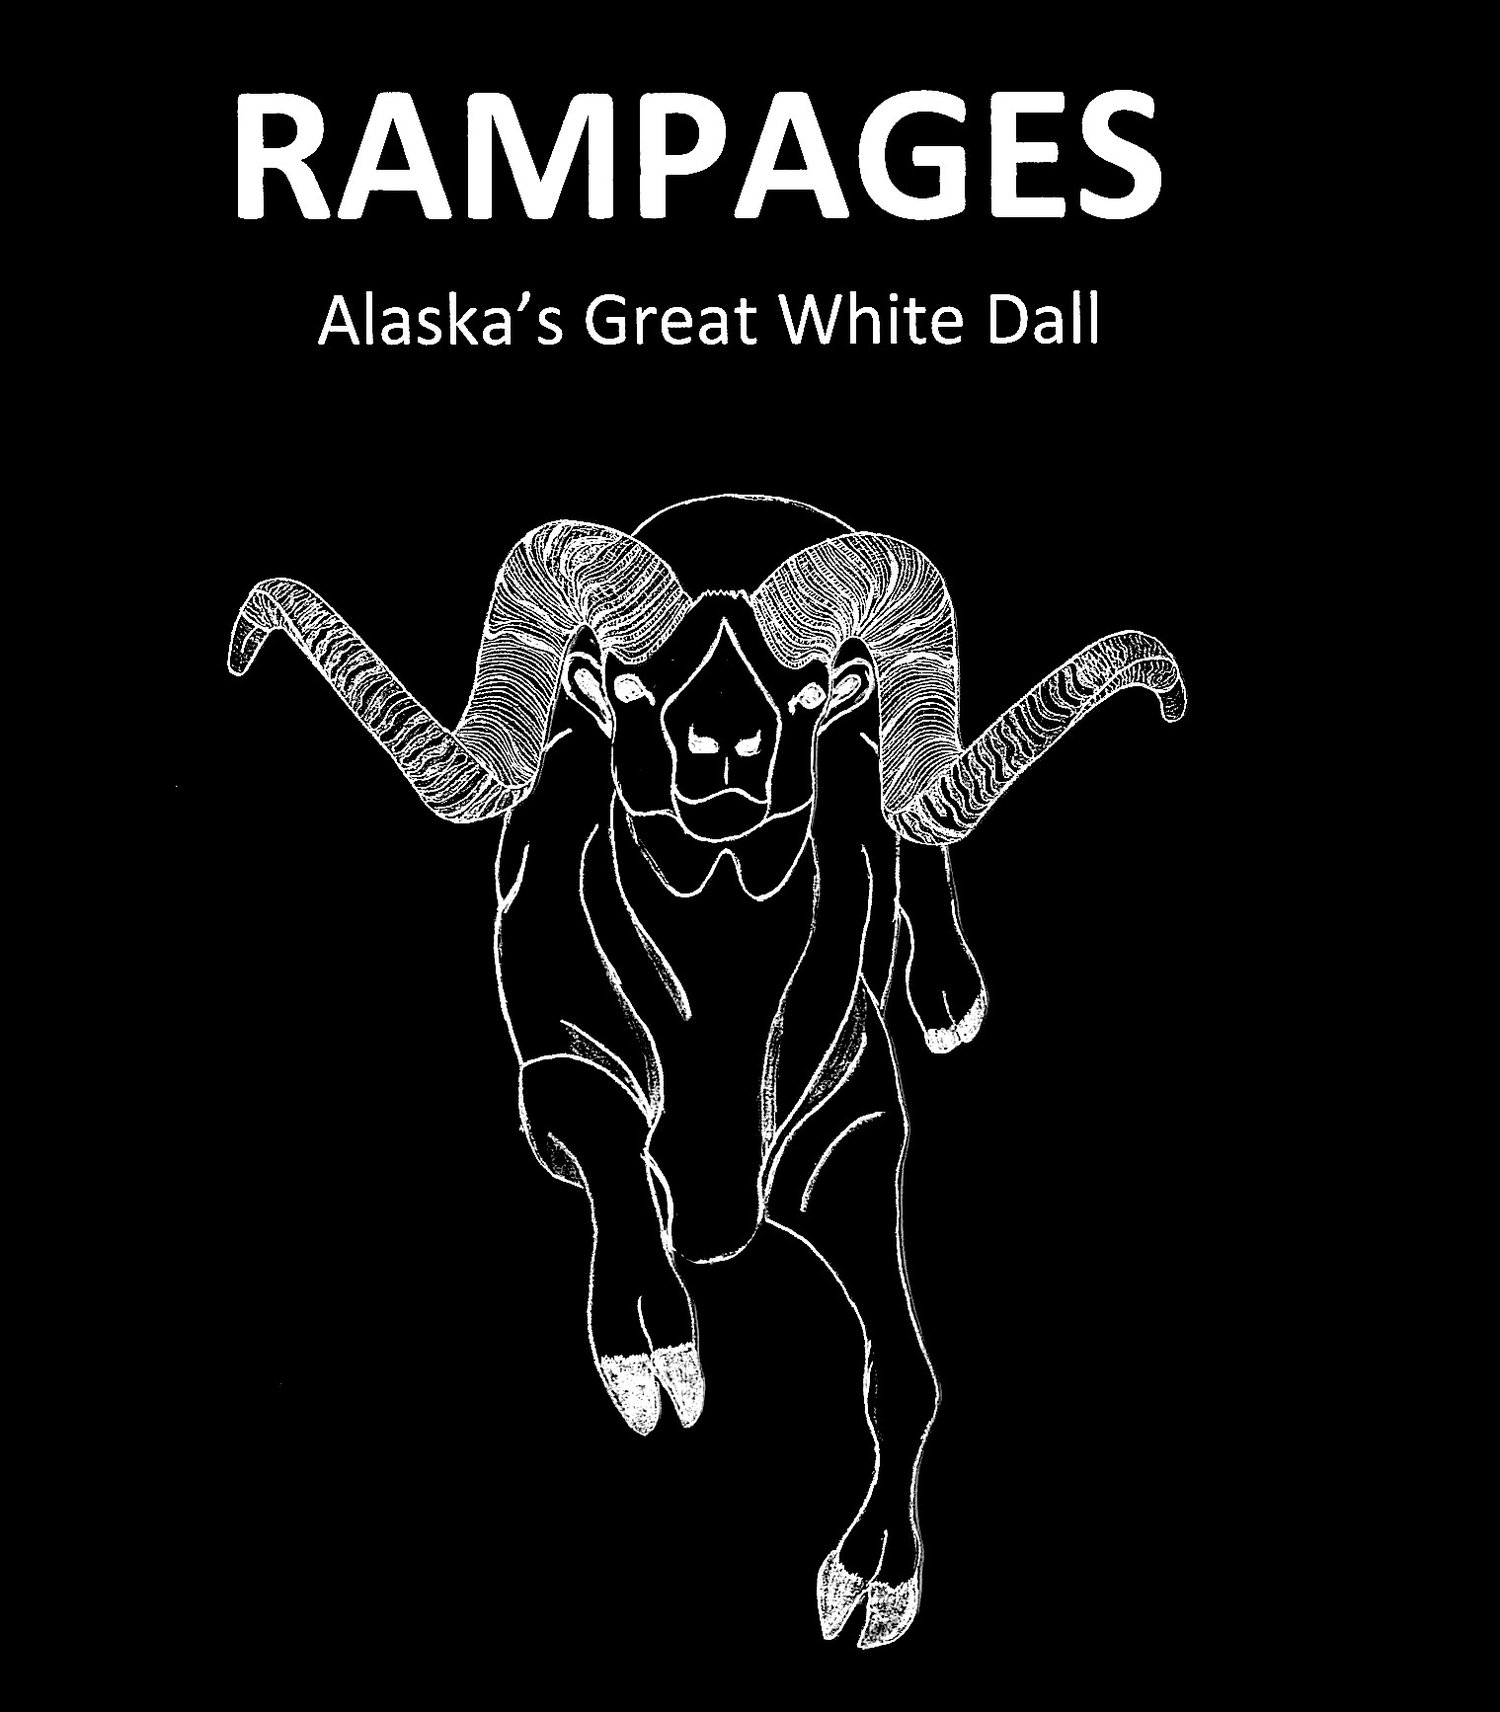 RAMPAGES 1-2-3